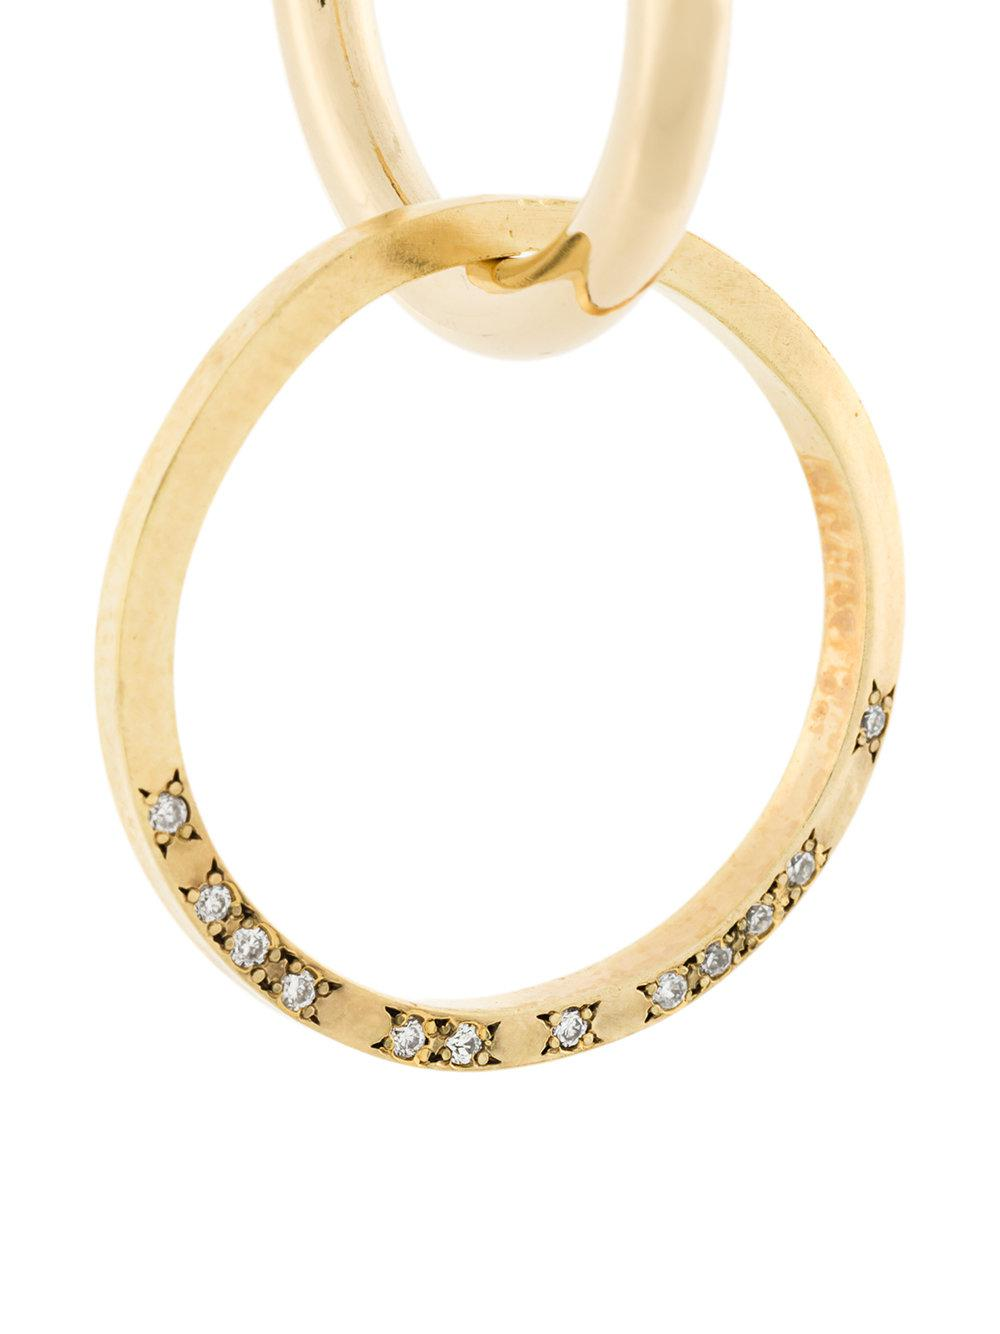 Lara Melchior 24kt gold single hoop diamond earring - Metallic QJ0UO8